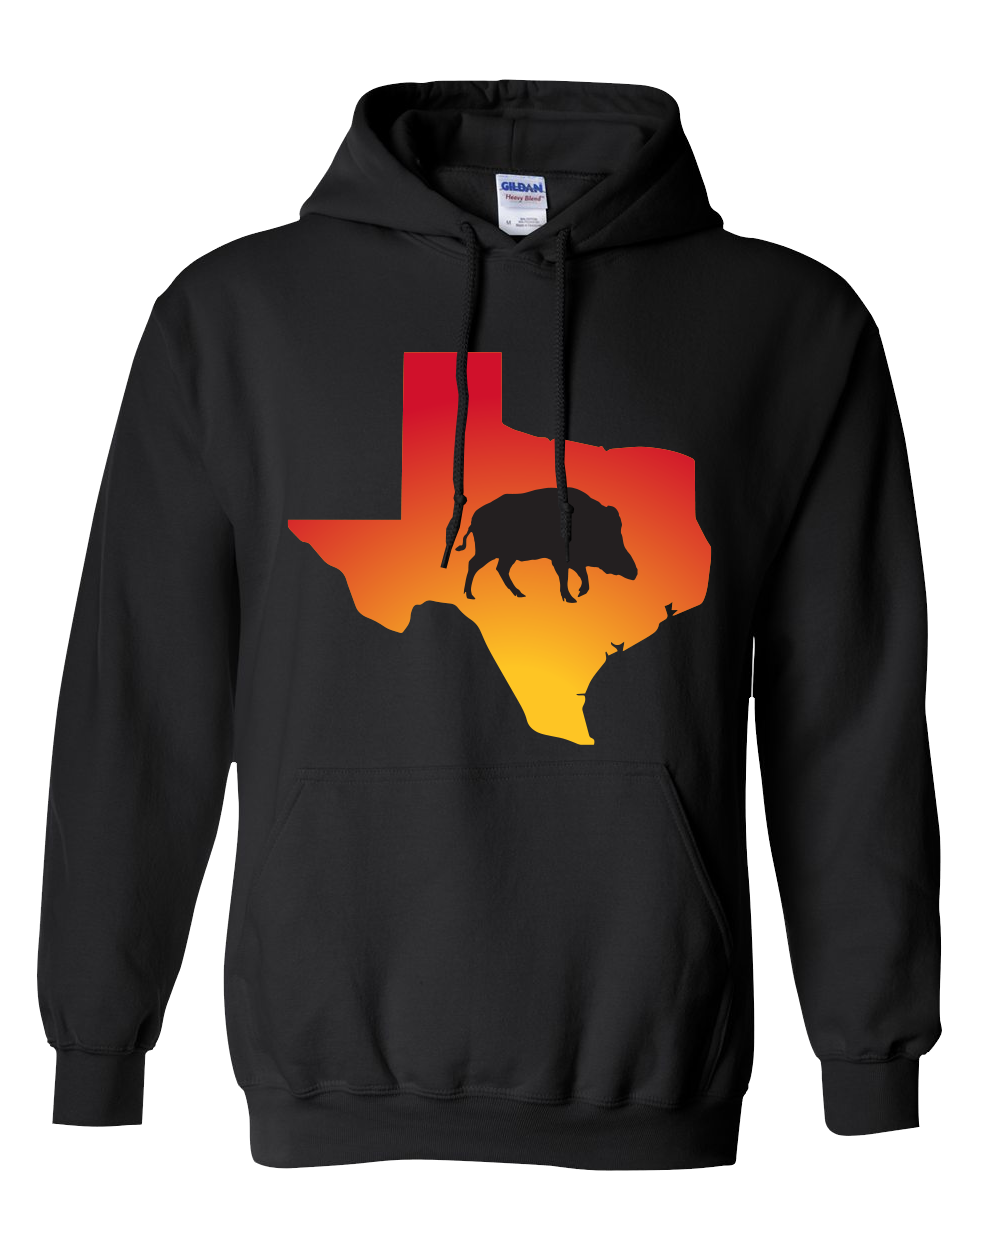 Pullover Hooded Sweatshirt Texas Black Wild Hog Vibrant Design High Quality Tight Knit Ring Spun Low Maintenance Cotton Printed With The Newest Available Color Transfer Technology